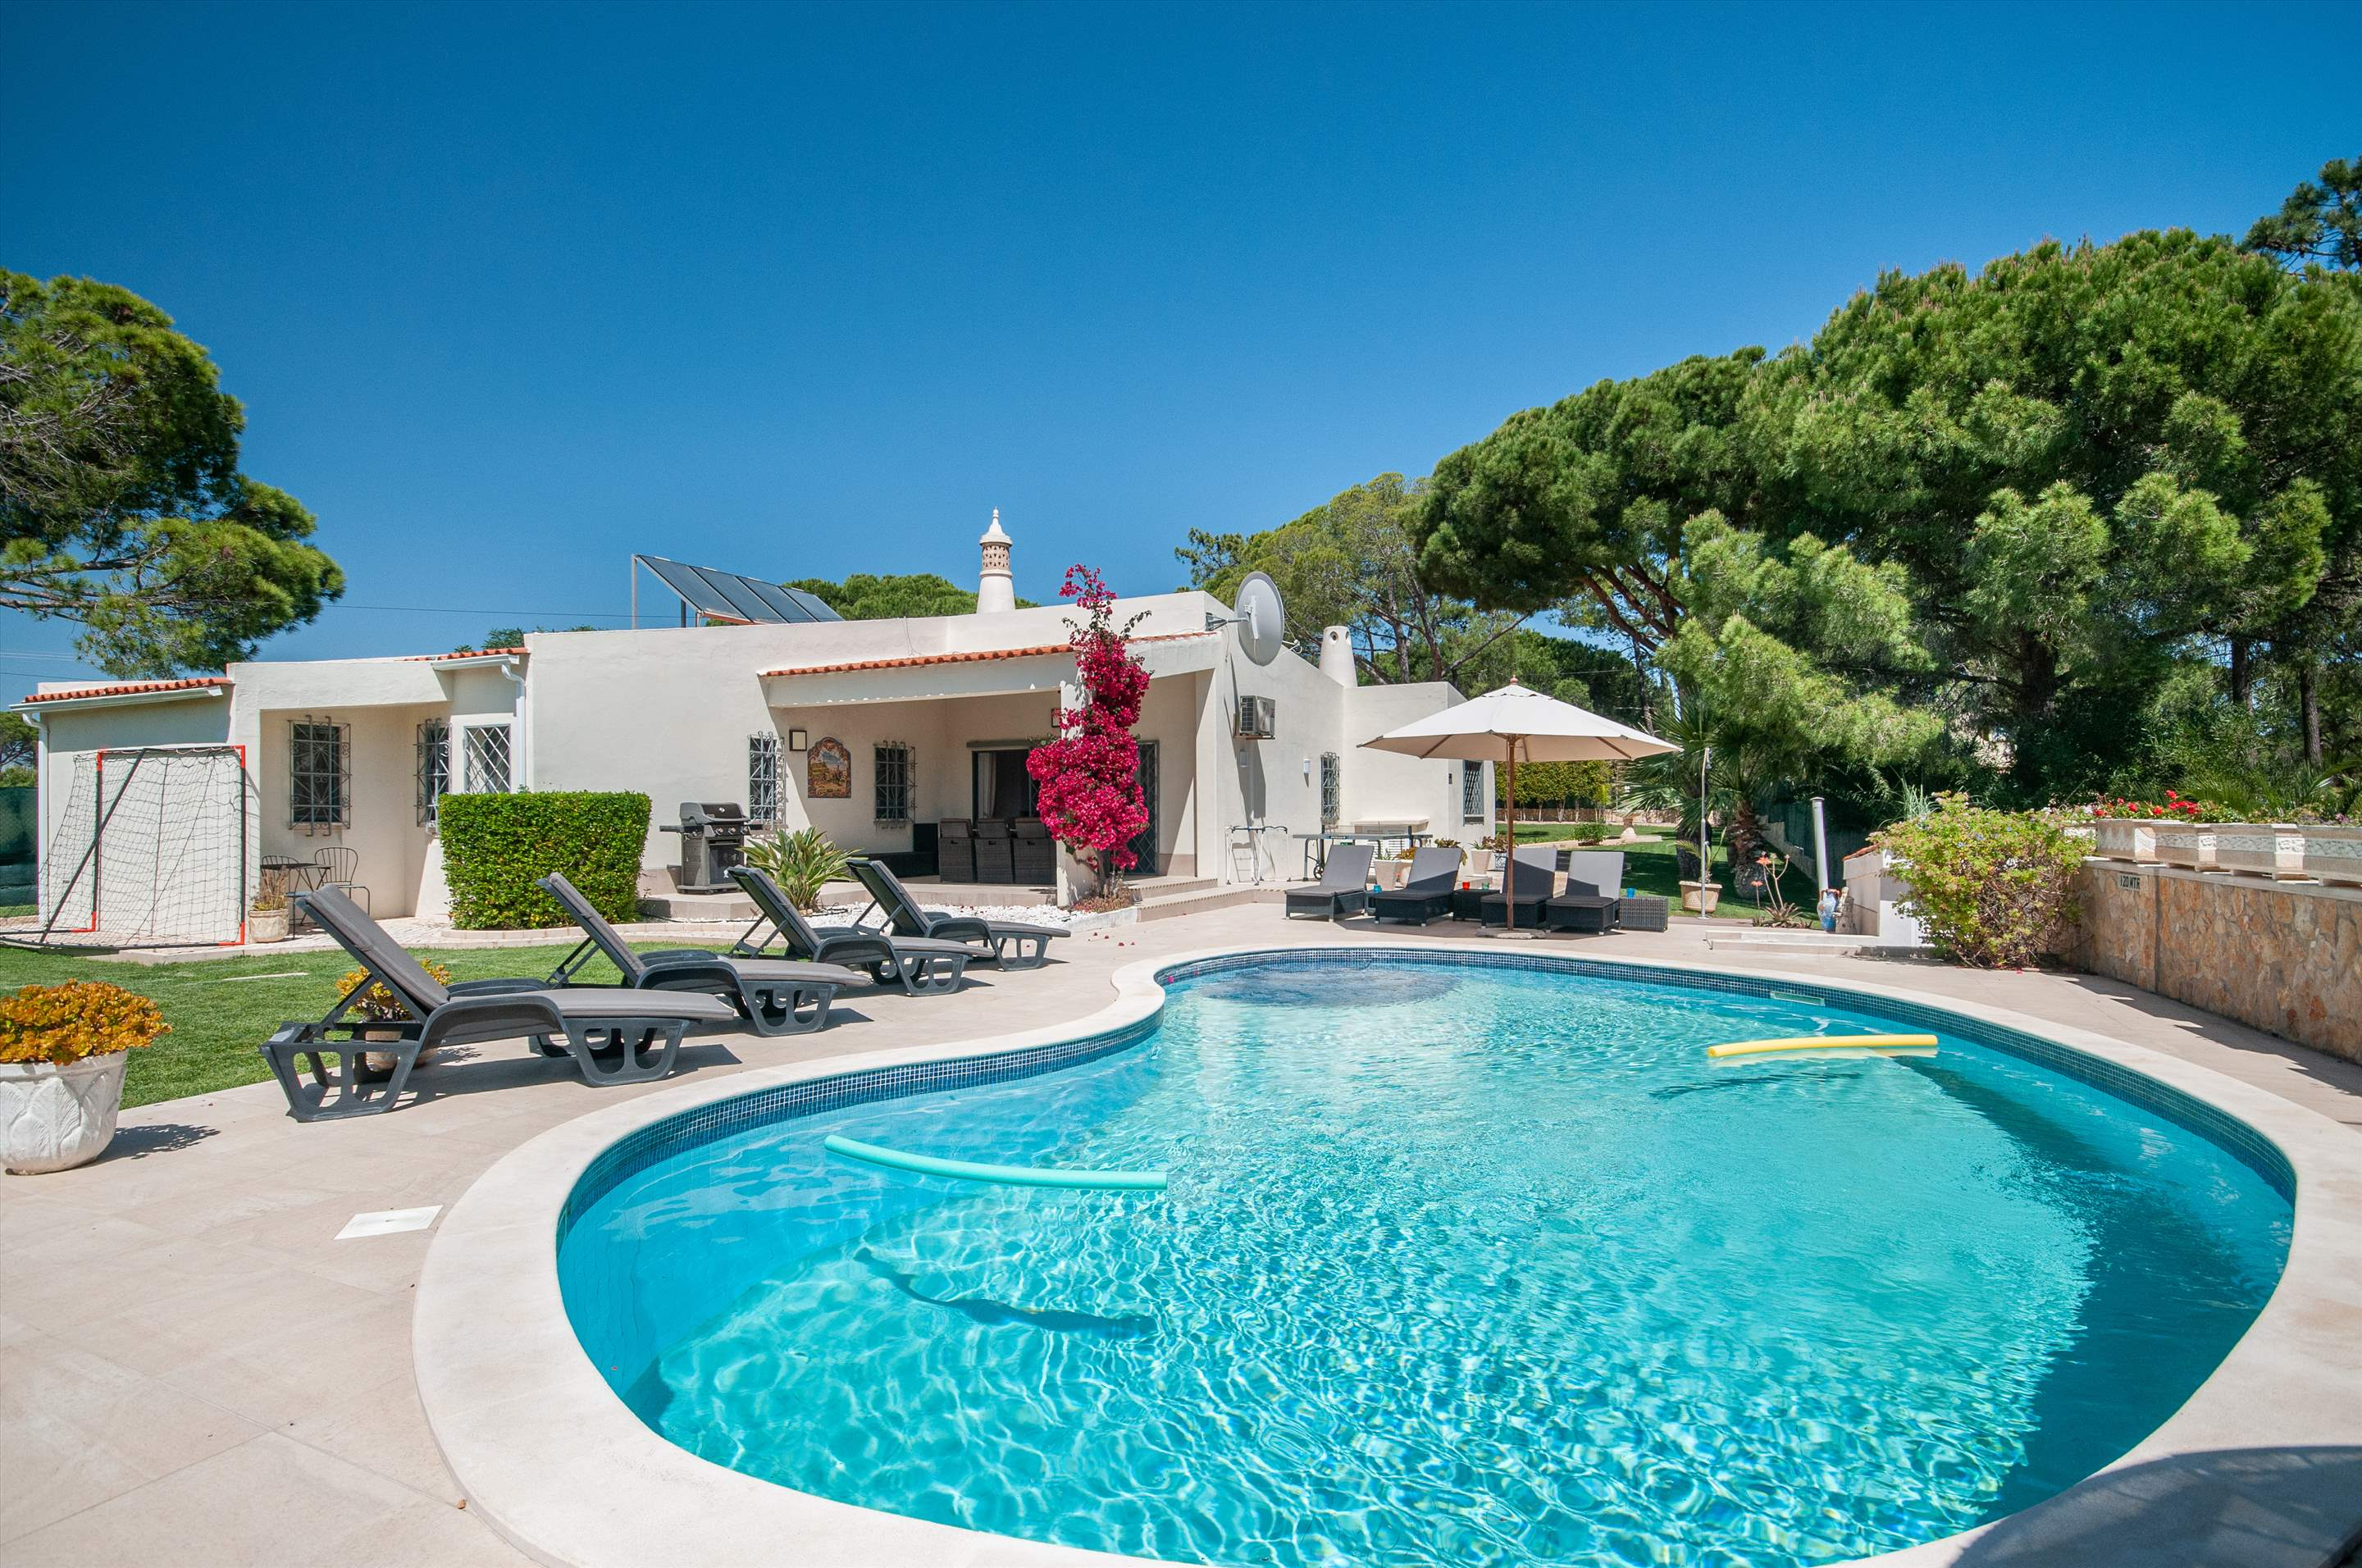 Villa Quinta Francisco, 4 bedroom villa in Vale do Lobo, Algarve Photo #21